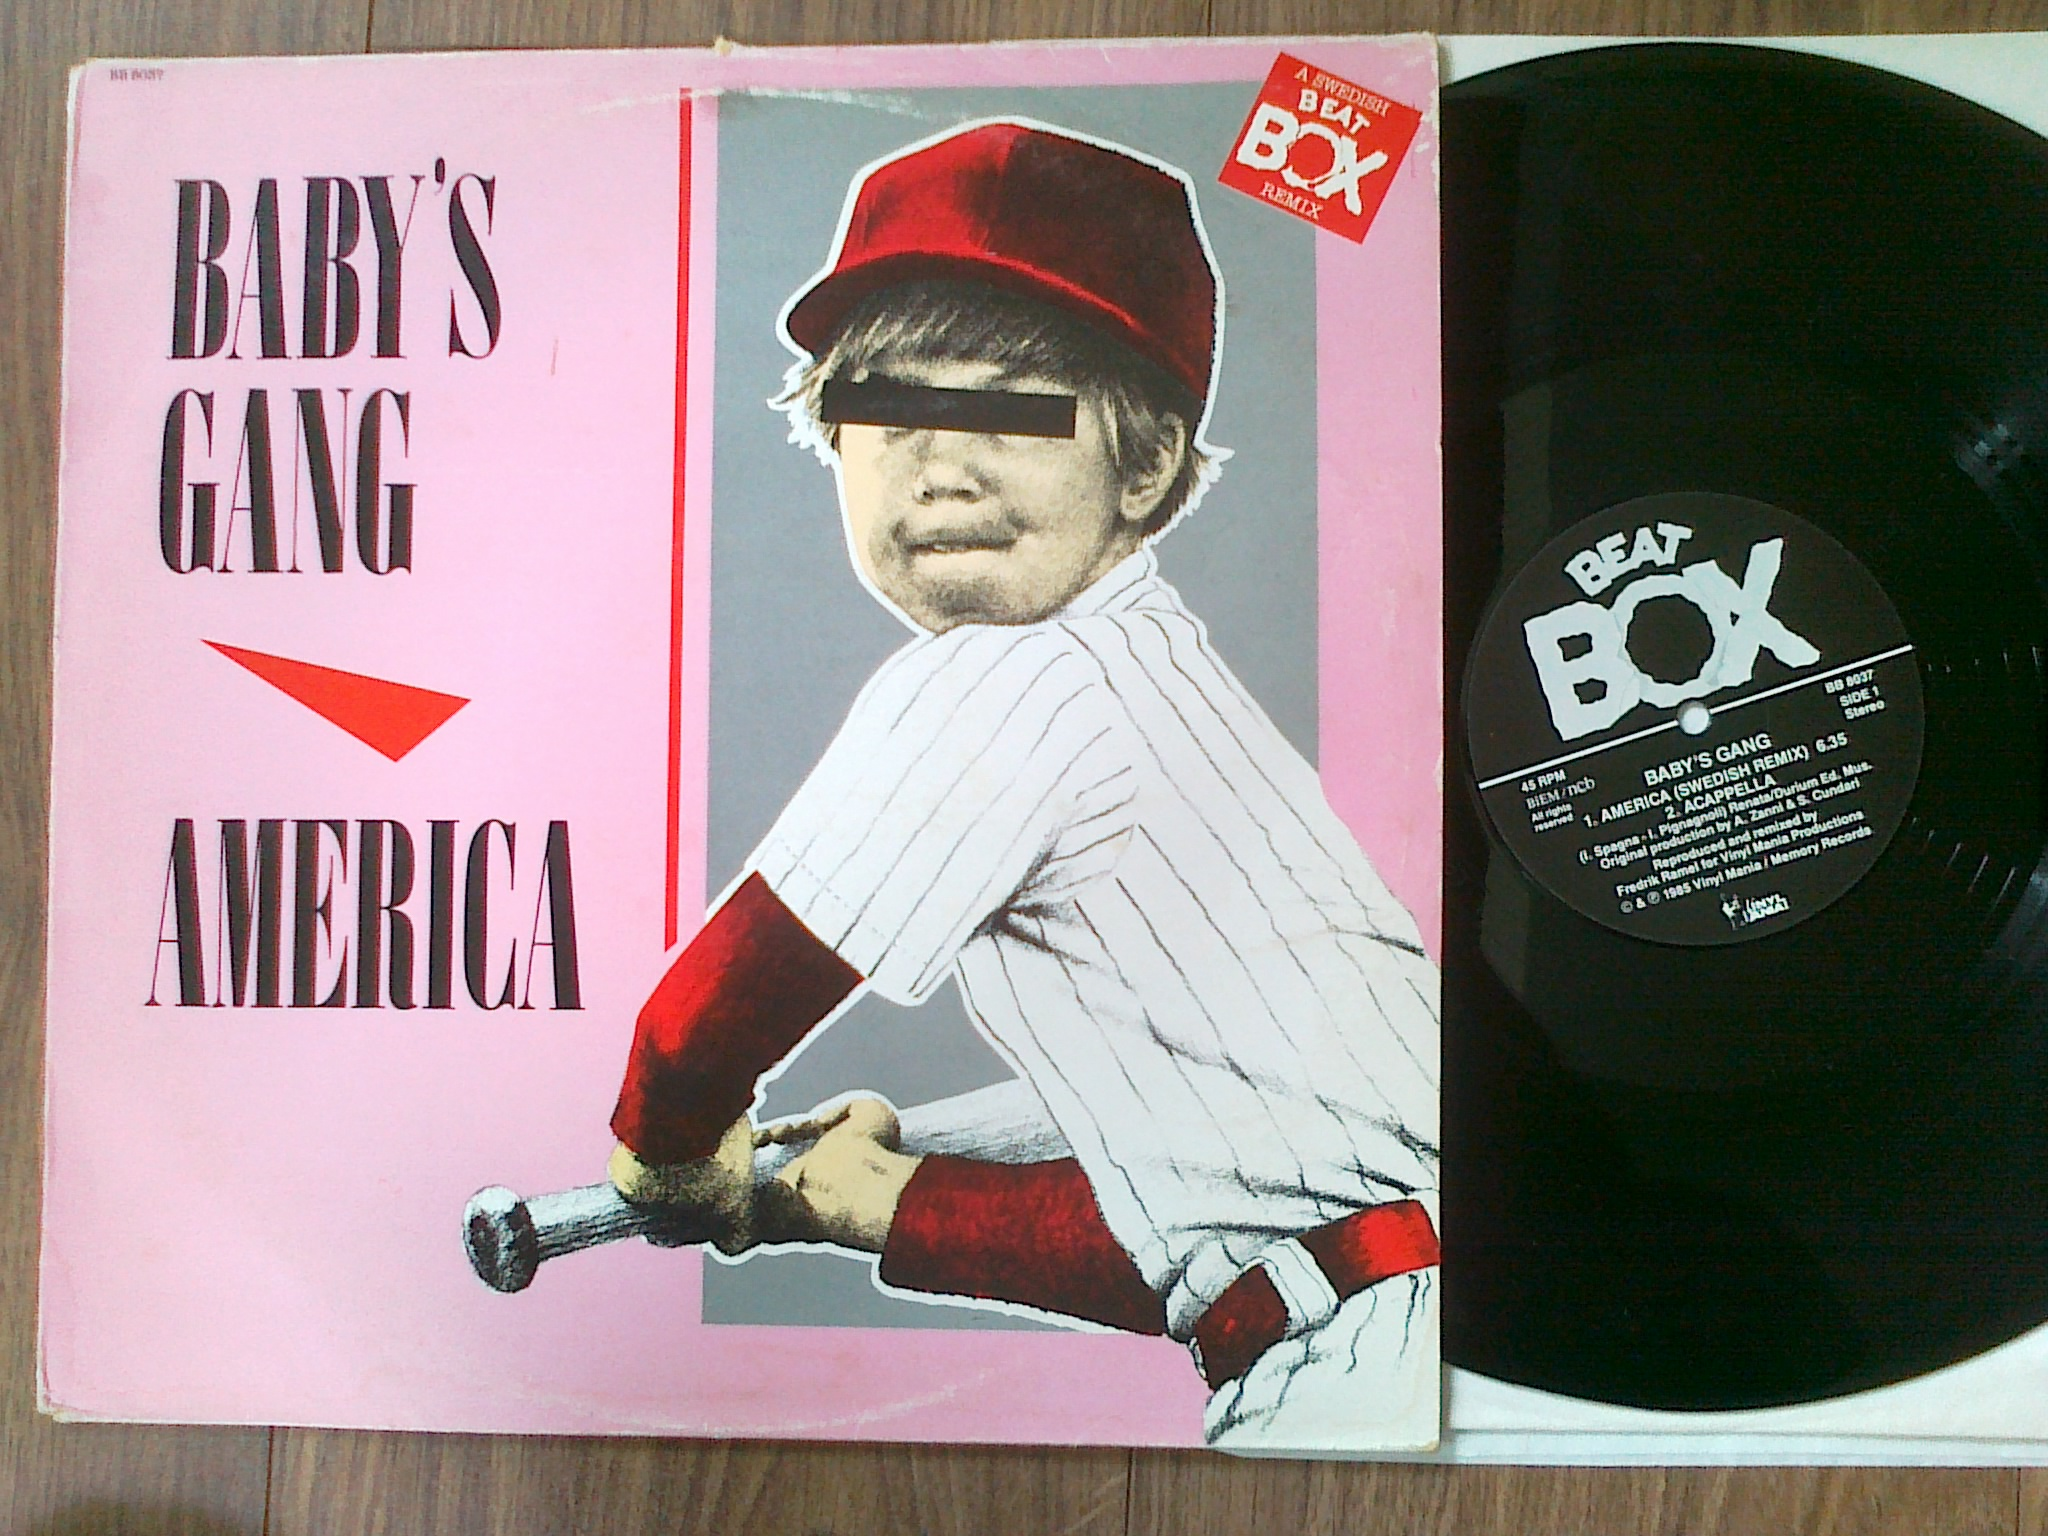 Baby's Gang - America (Beat Box)